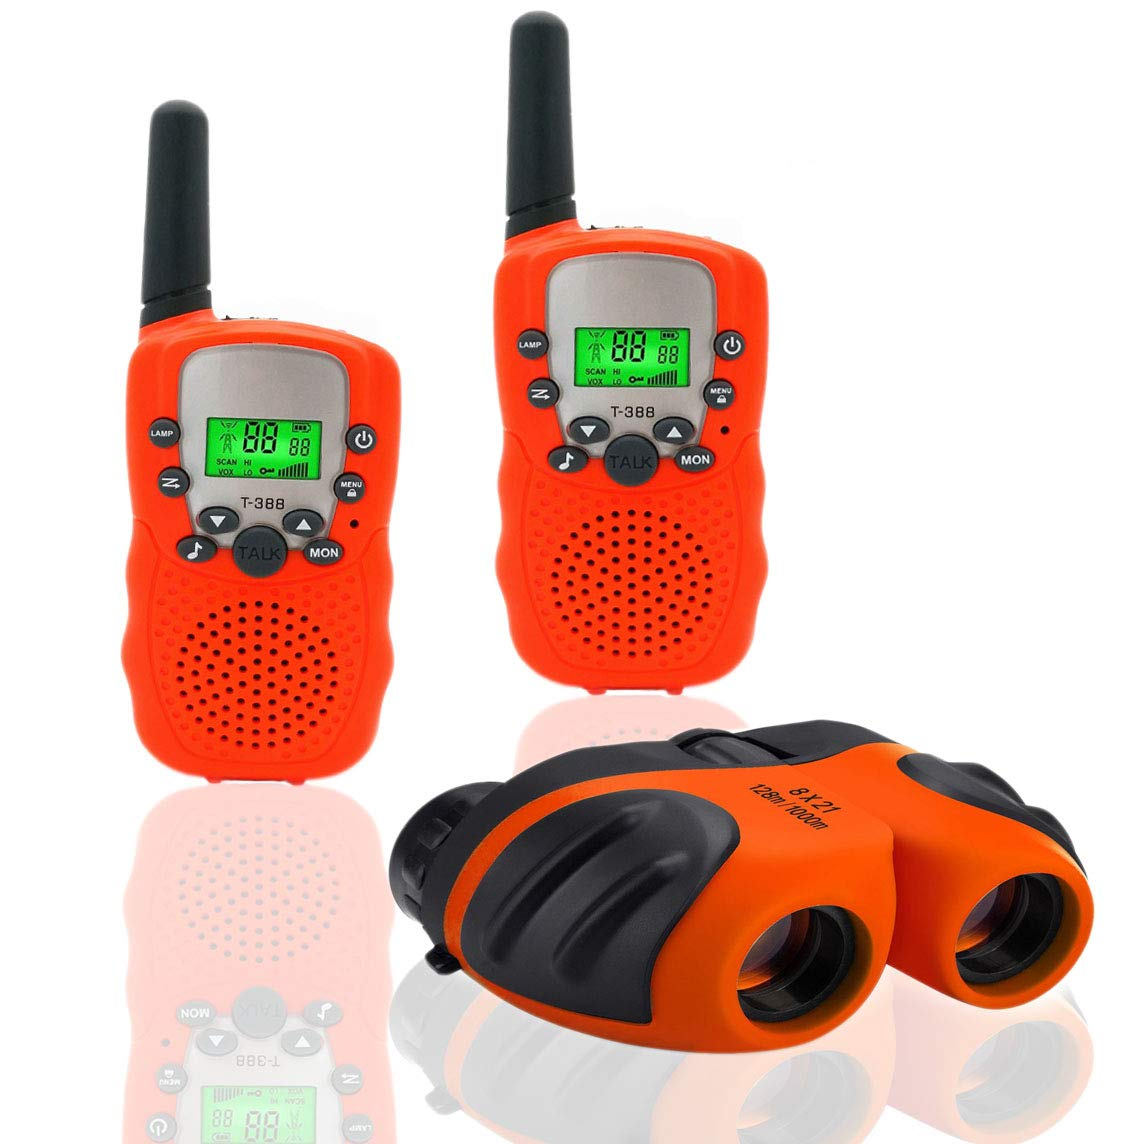 Happy Gift Toys for 3-12 Year Old Girls, Walkie Talkies for Kids Toys for 3-12 Year Old Boys Mini BinocularsToys Gifts for Teen Boys Gifts for Teen Girls Birthday Gifts,1Set(Orange)